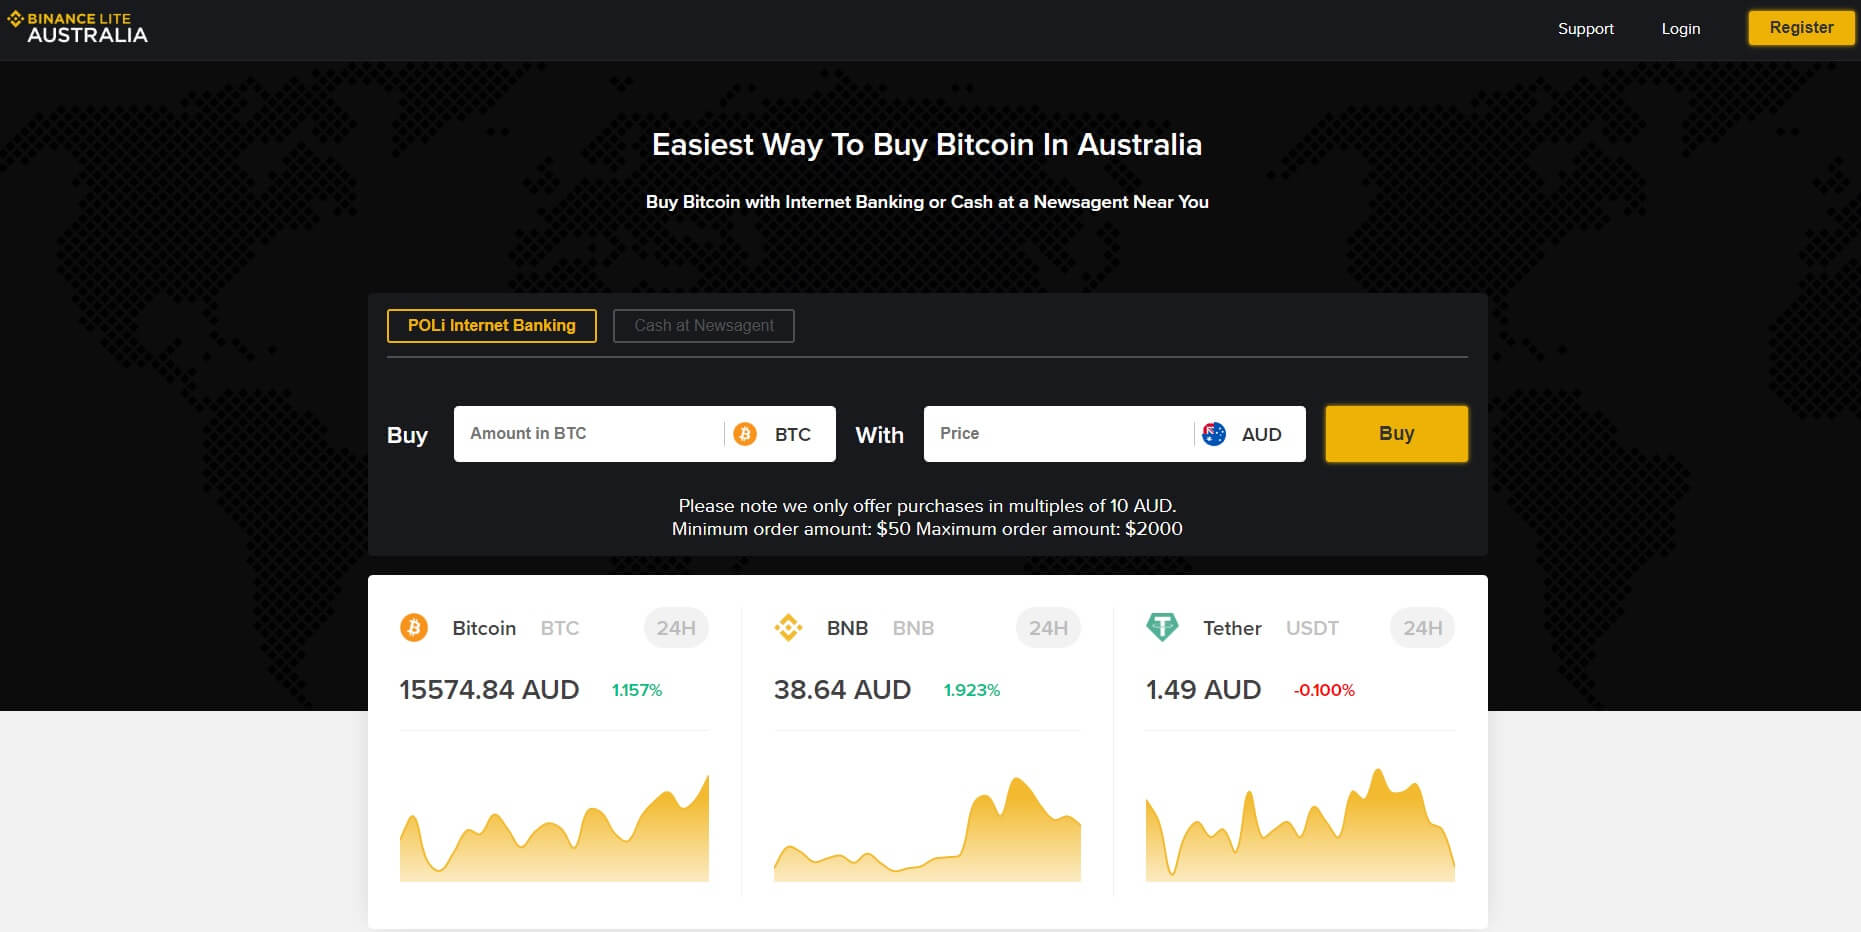 binance lite australia